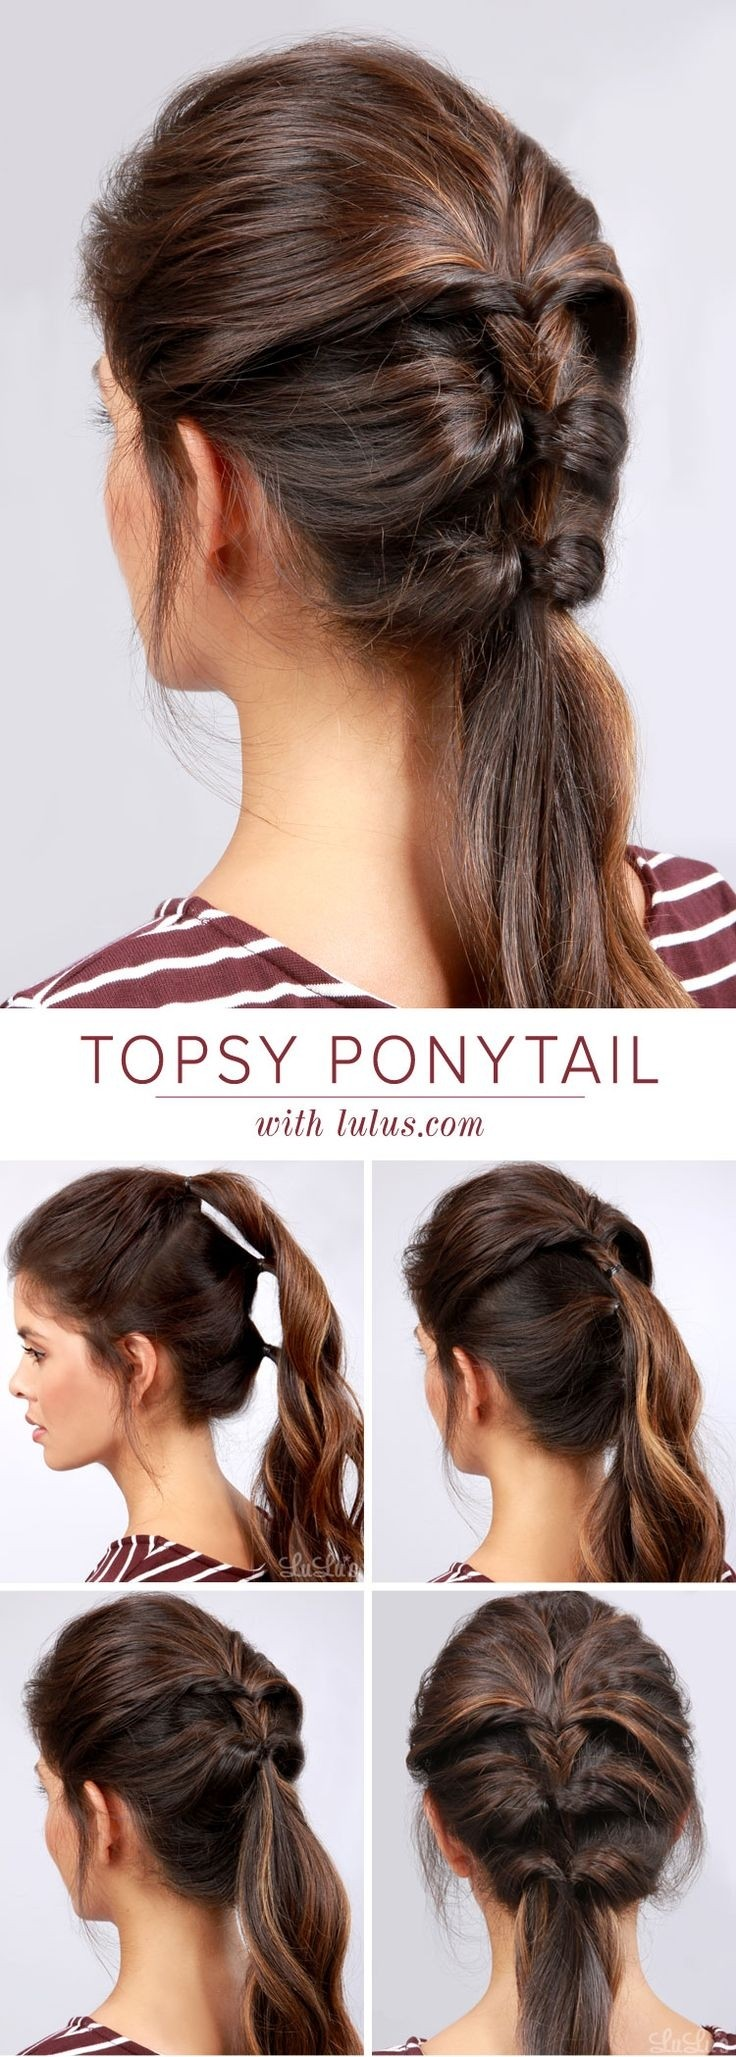 10 Ponytail Hairstyles: Discover Latest Ponytail Ideas Now